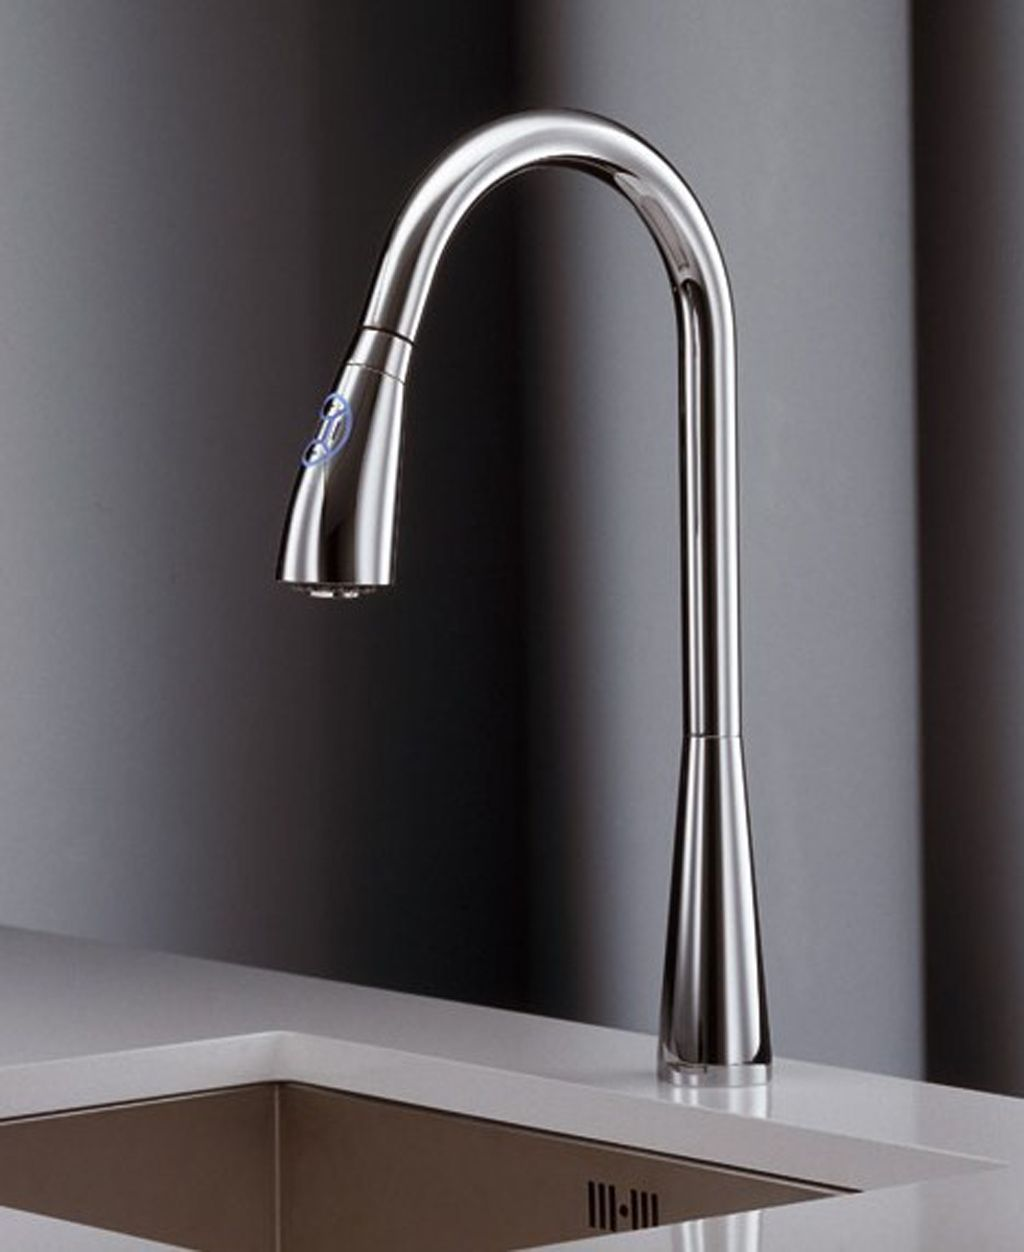 The Modern Kitchen Faucets is minimalist and pure design